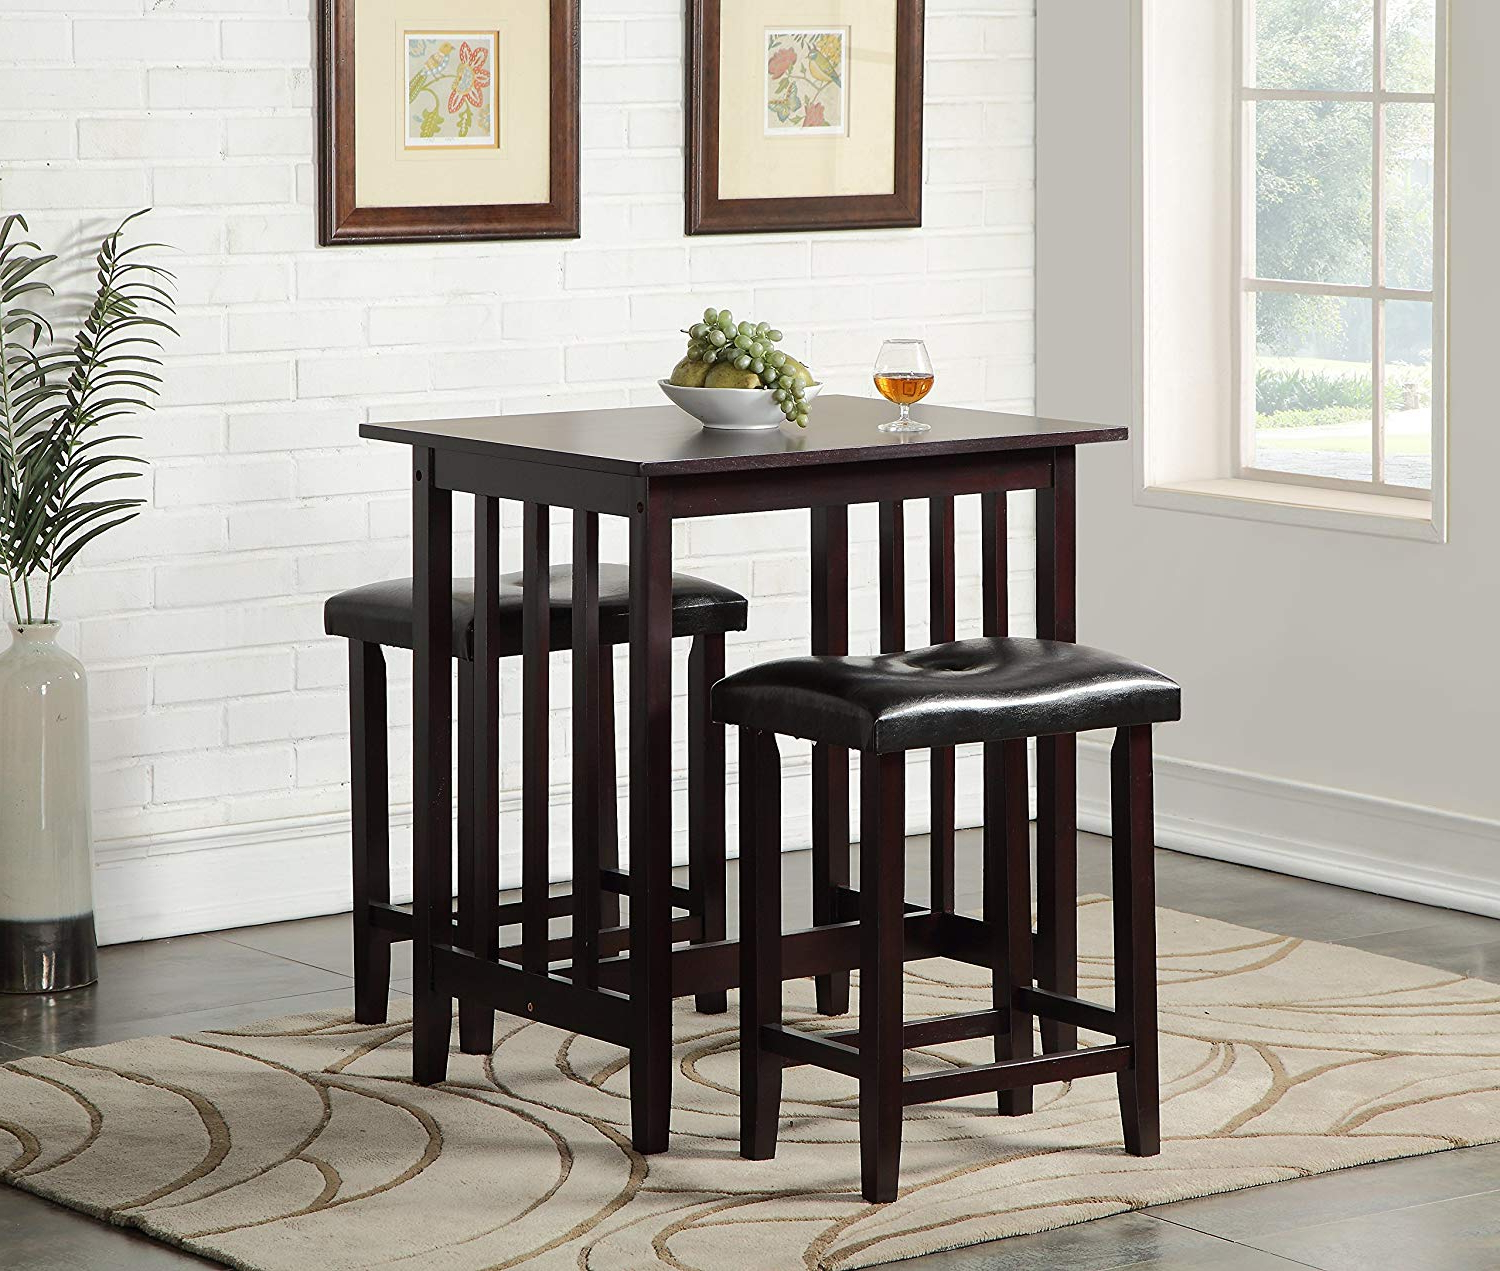 Moorehead 3 Piece Counter Height Dining Sets Inside Current Amazon – Roundhill Furniture 3 Piece Counter Height Dining Set (View 9 of 25)